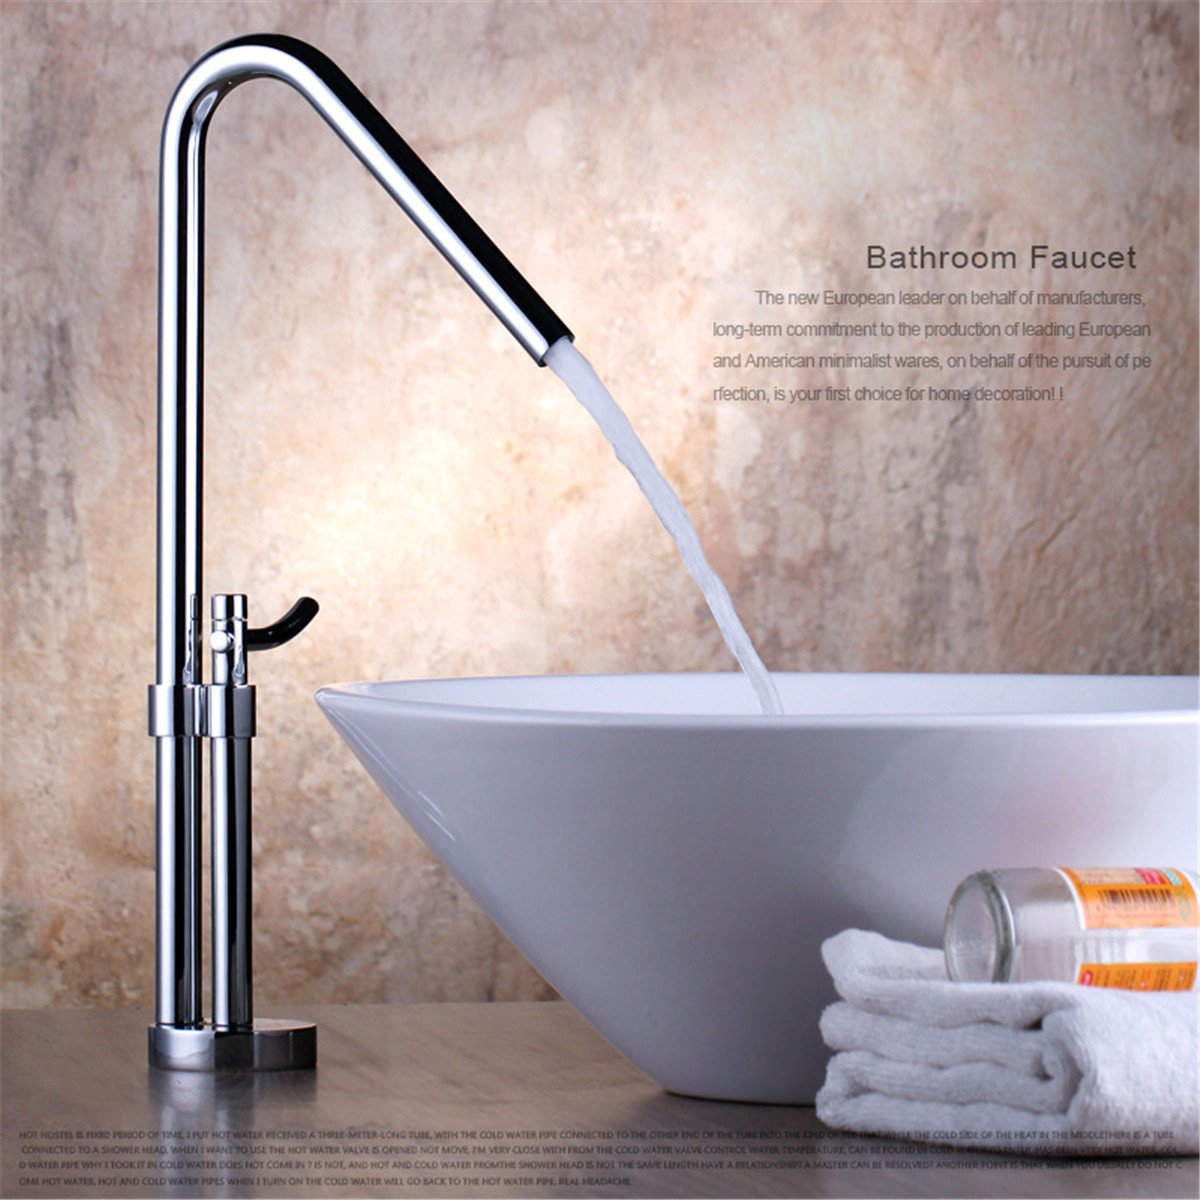 WY-Fashion High-End Faucet Heighten Bathroom Sink Faucet Above Counter Basin Faucet Basin Faucet Hot And Cold Faucet One Hole